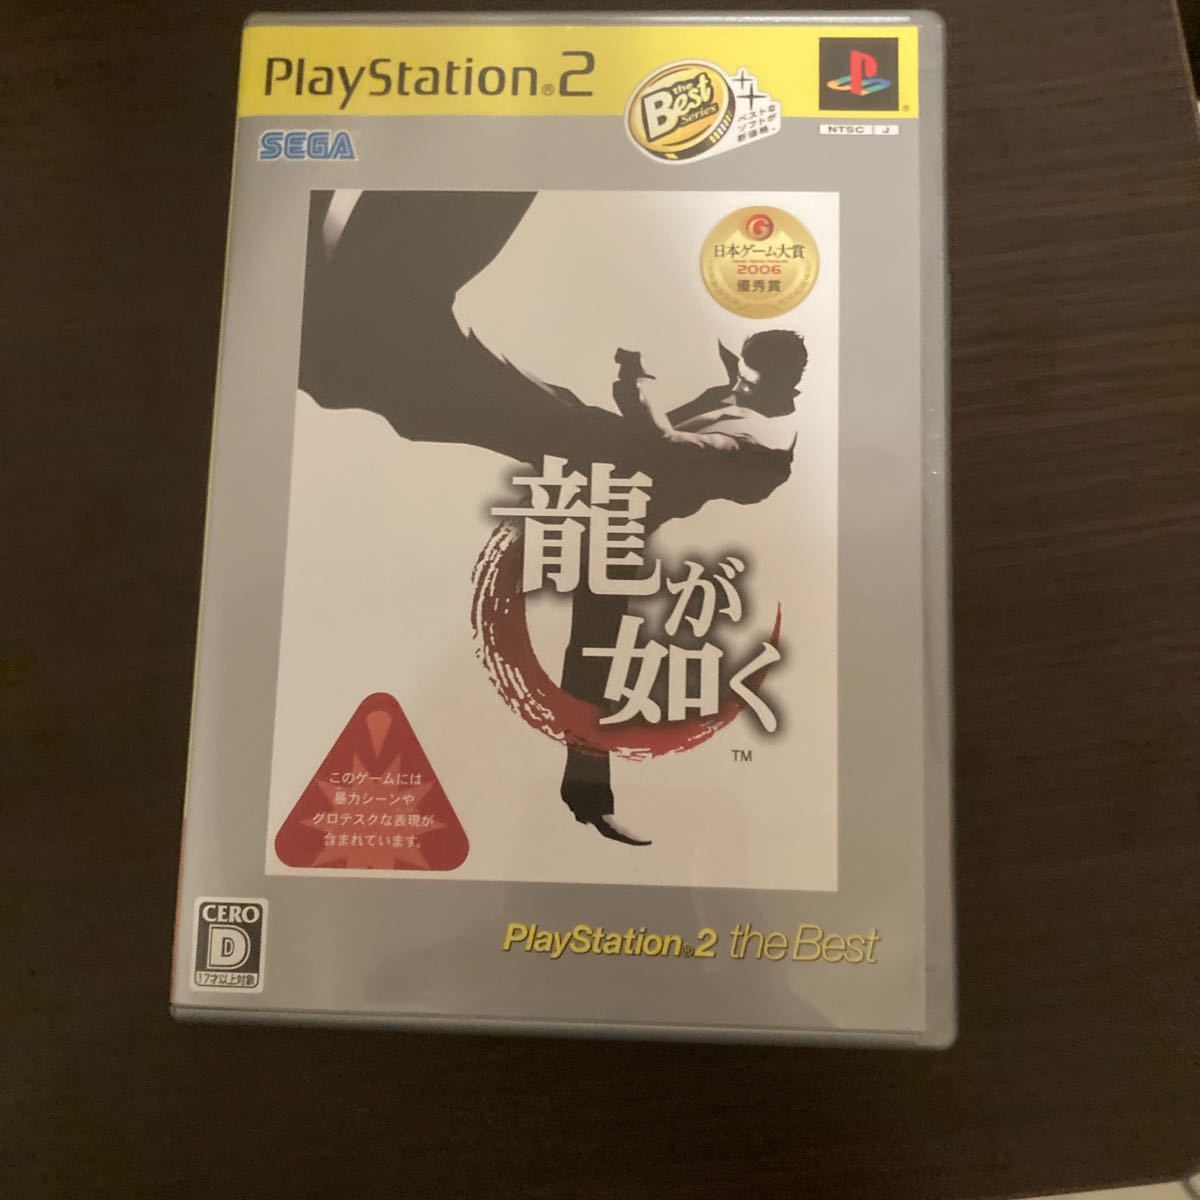 【PS2】 龍が如く [PlayStation 2 the Best]